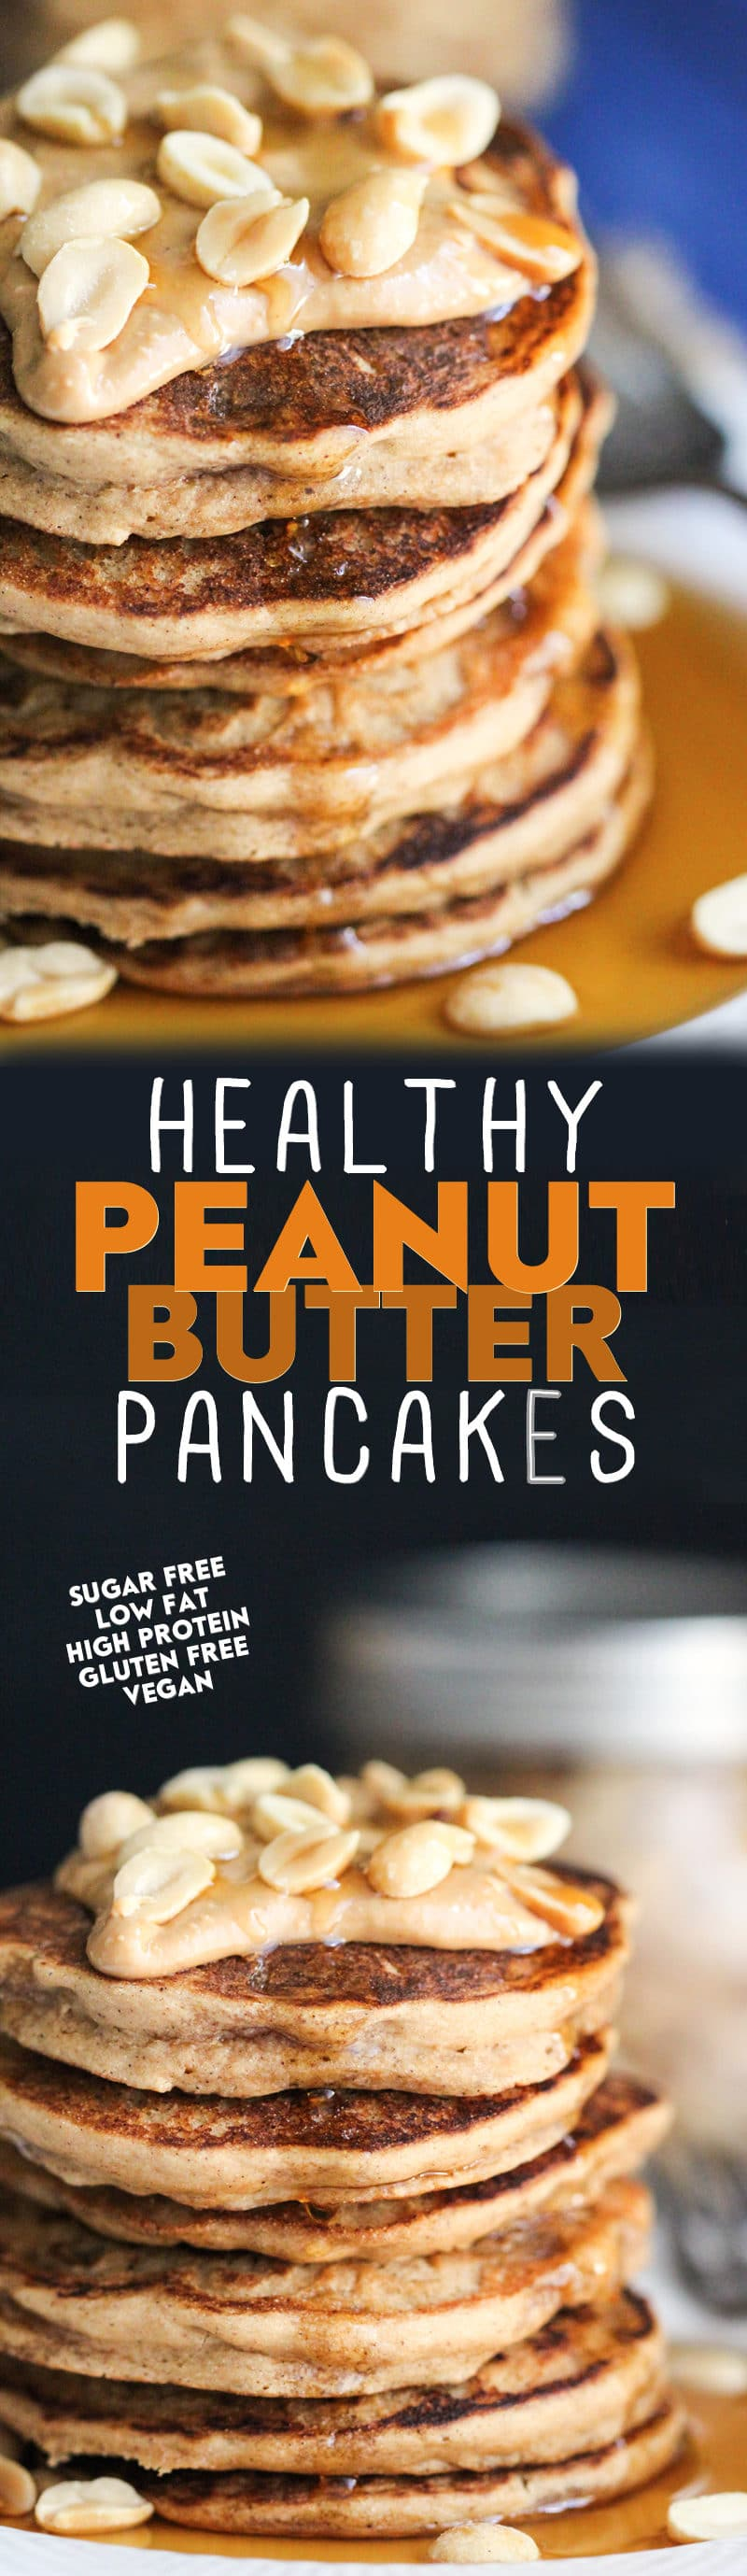 Healthy Peanut Butter Pancakes recipe (sugar free, low fat, high protein, high fiber, gluten free, dairy free, vegan) - Healthy Dessert Recipes at Desserts with Benefits